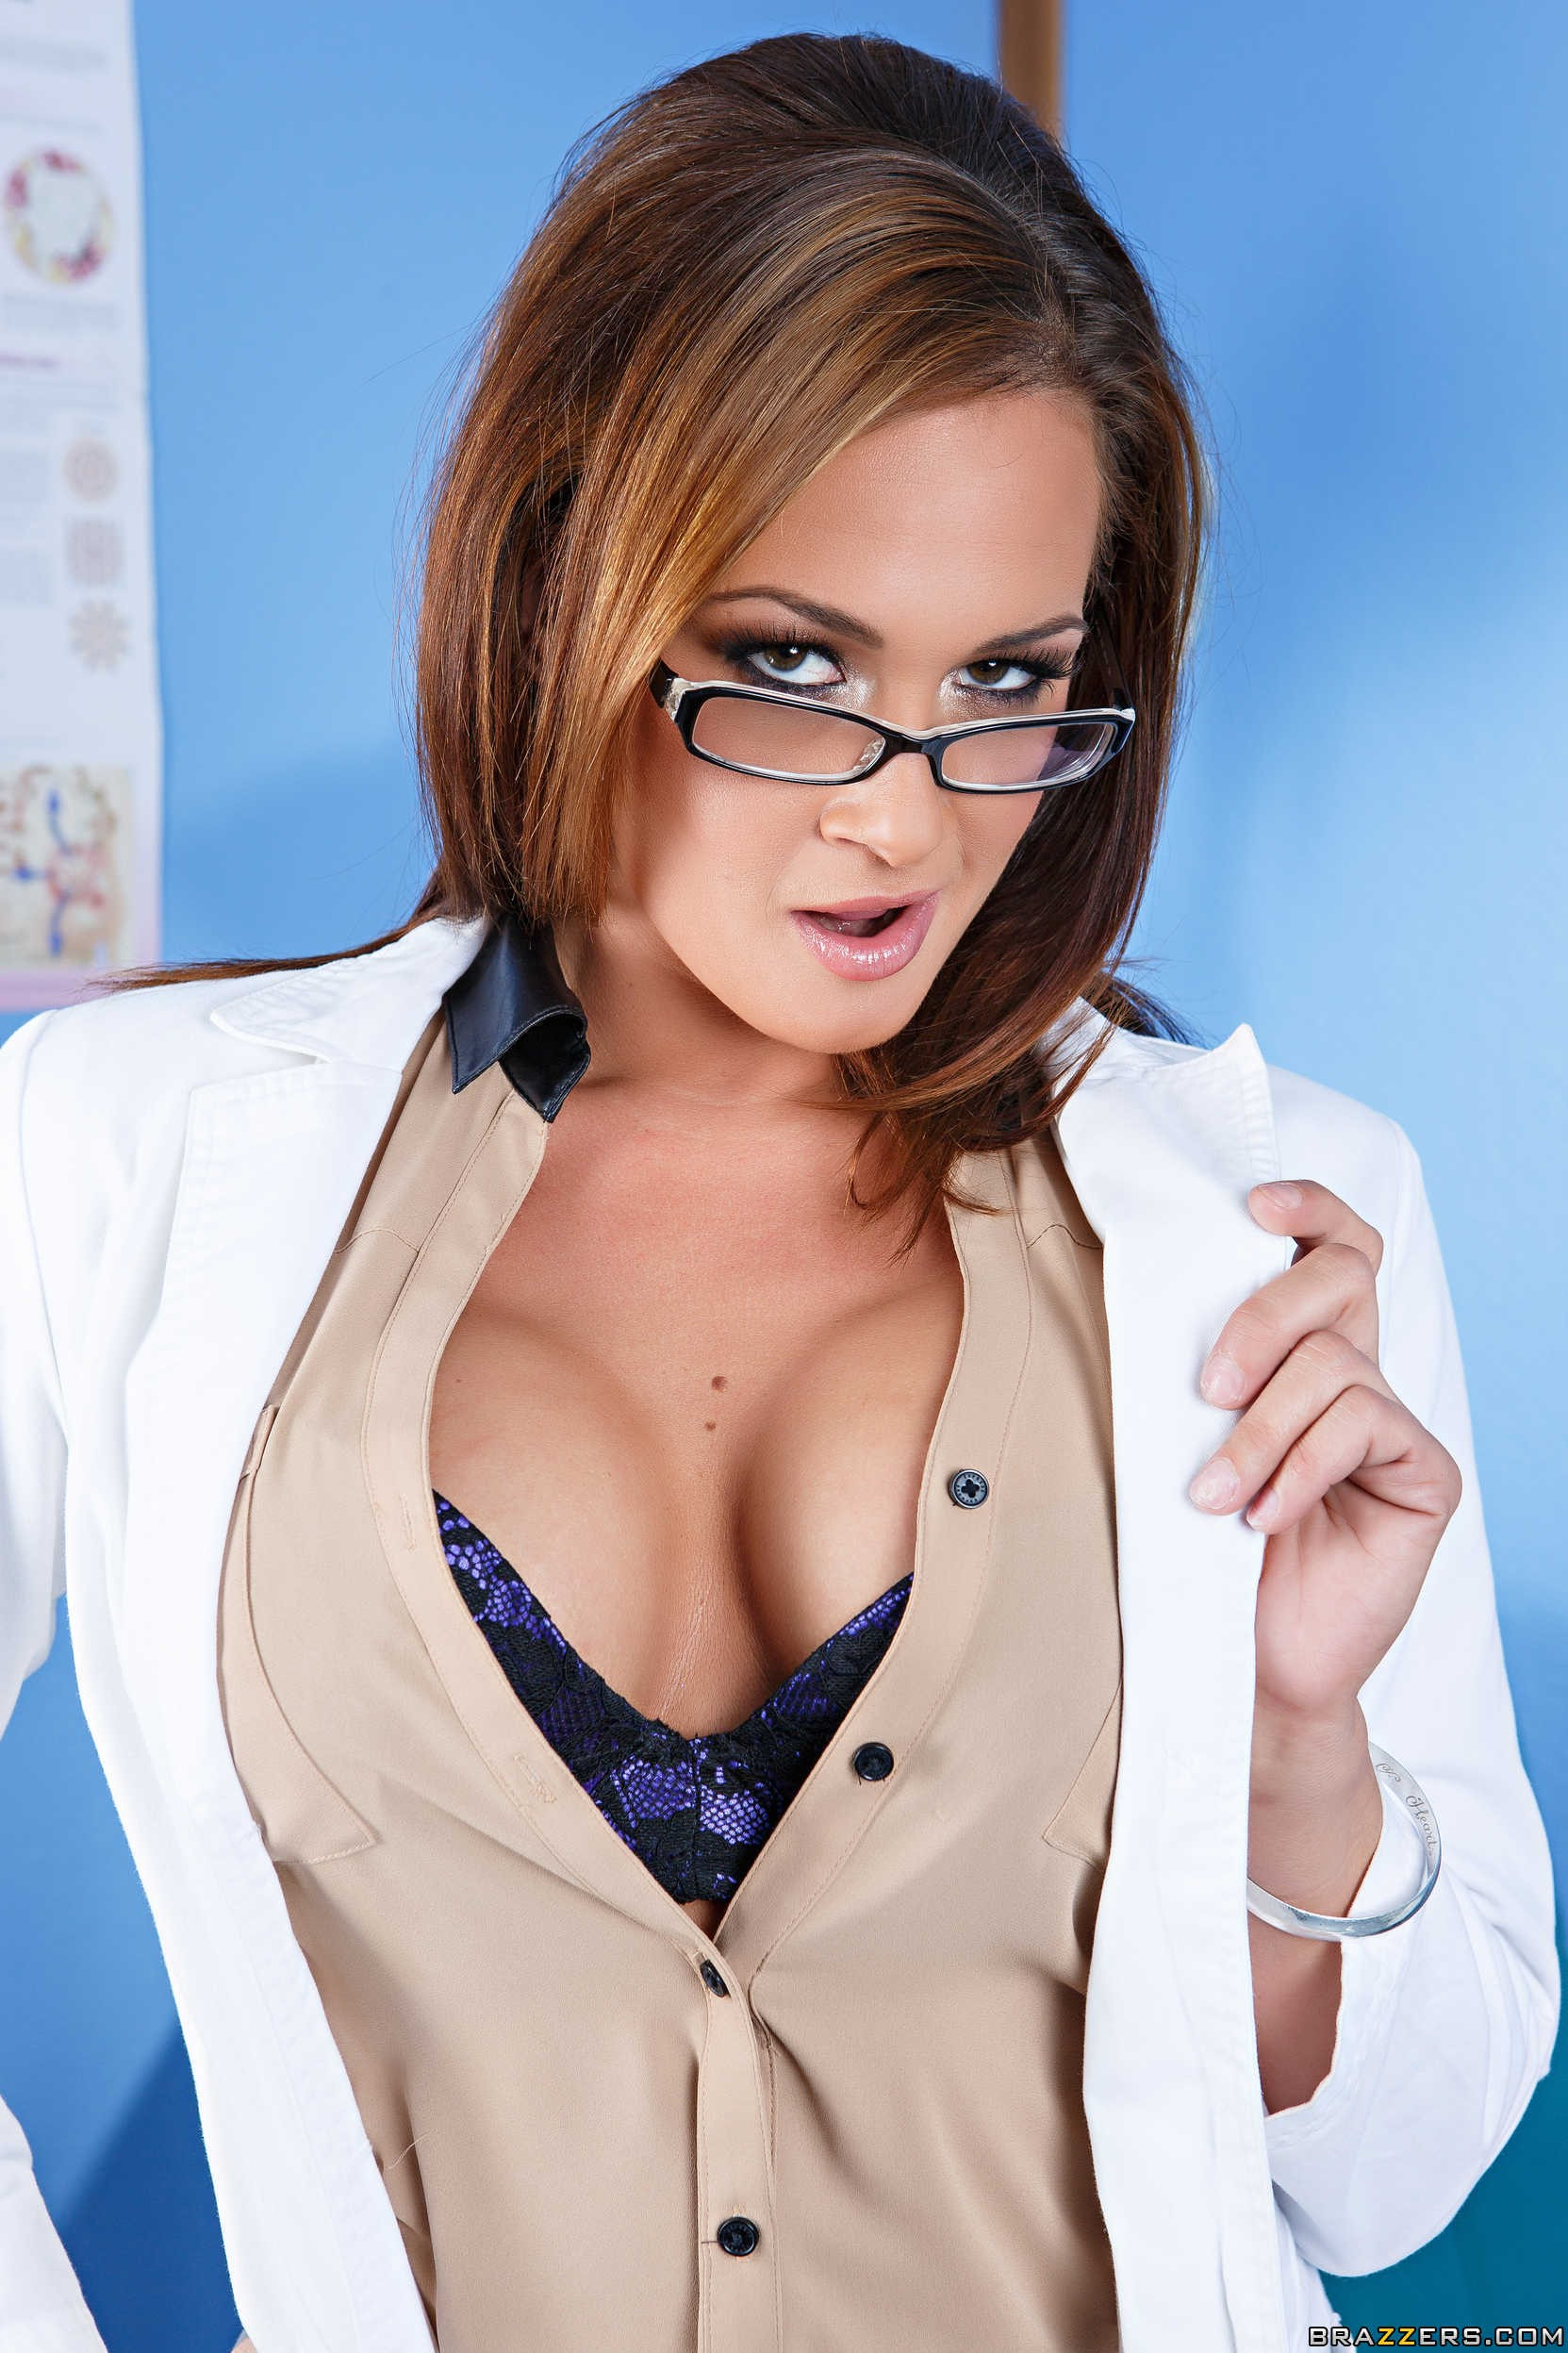 Tory Lane iphone Wallpapers